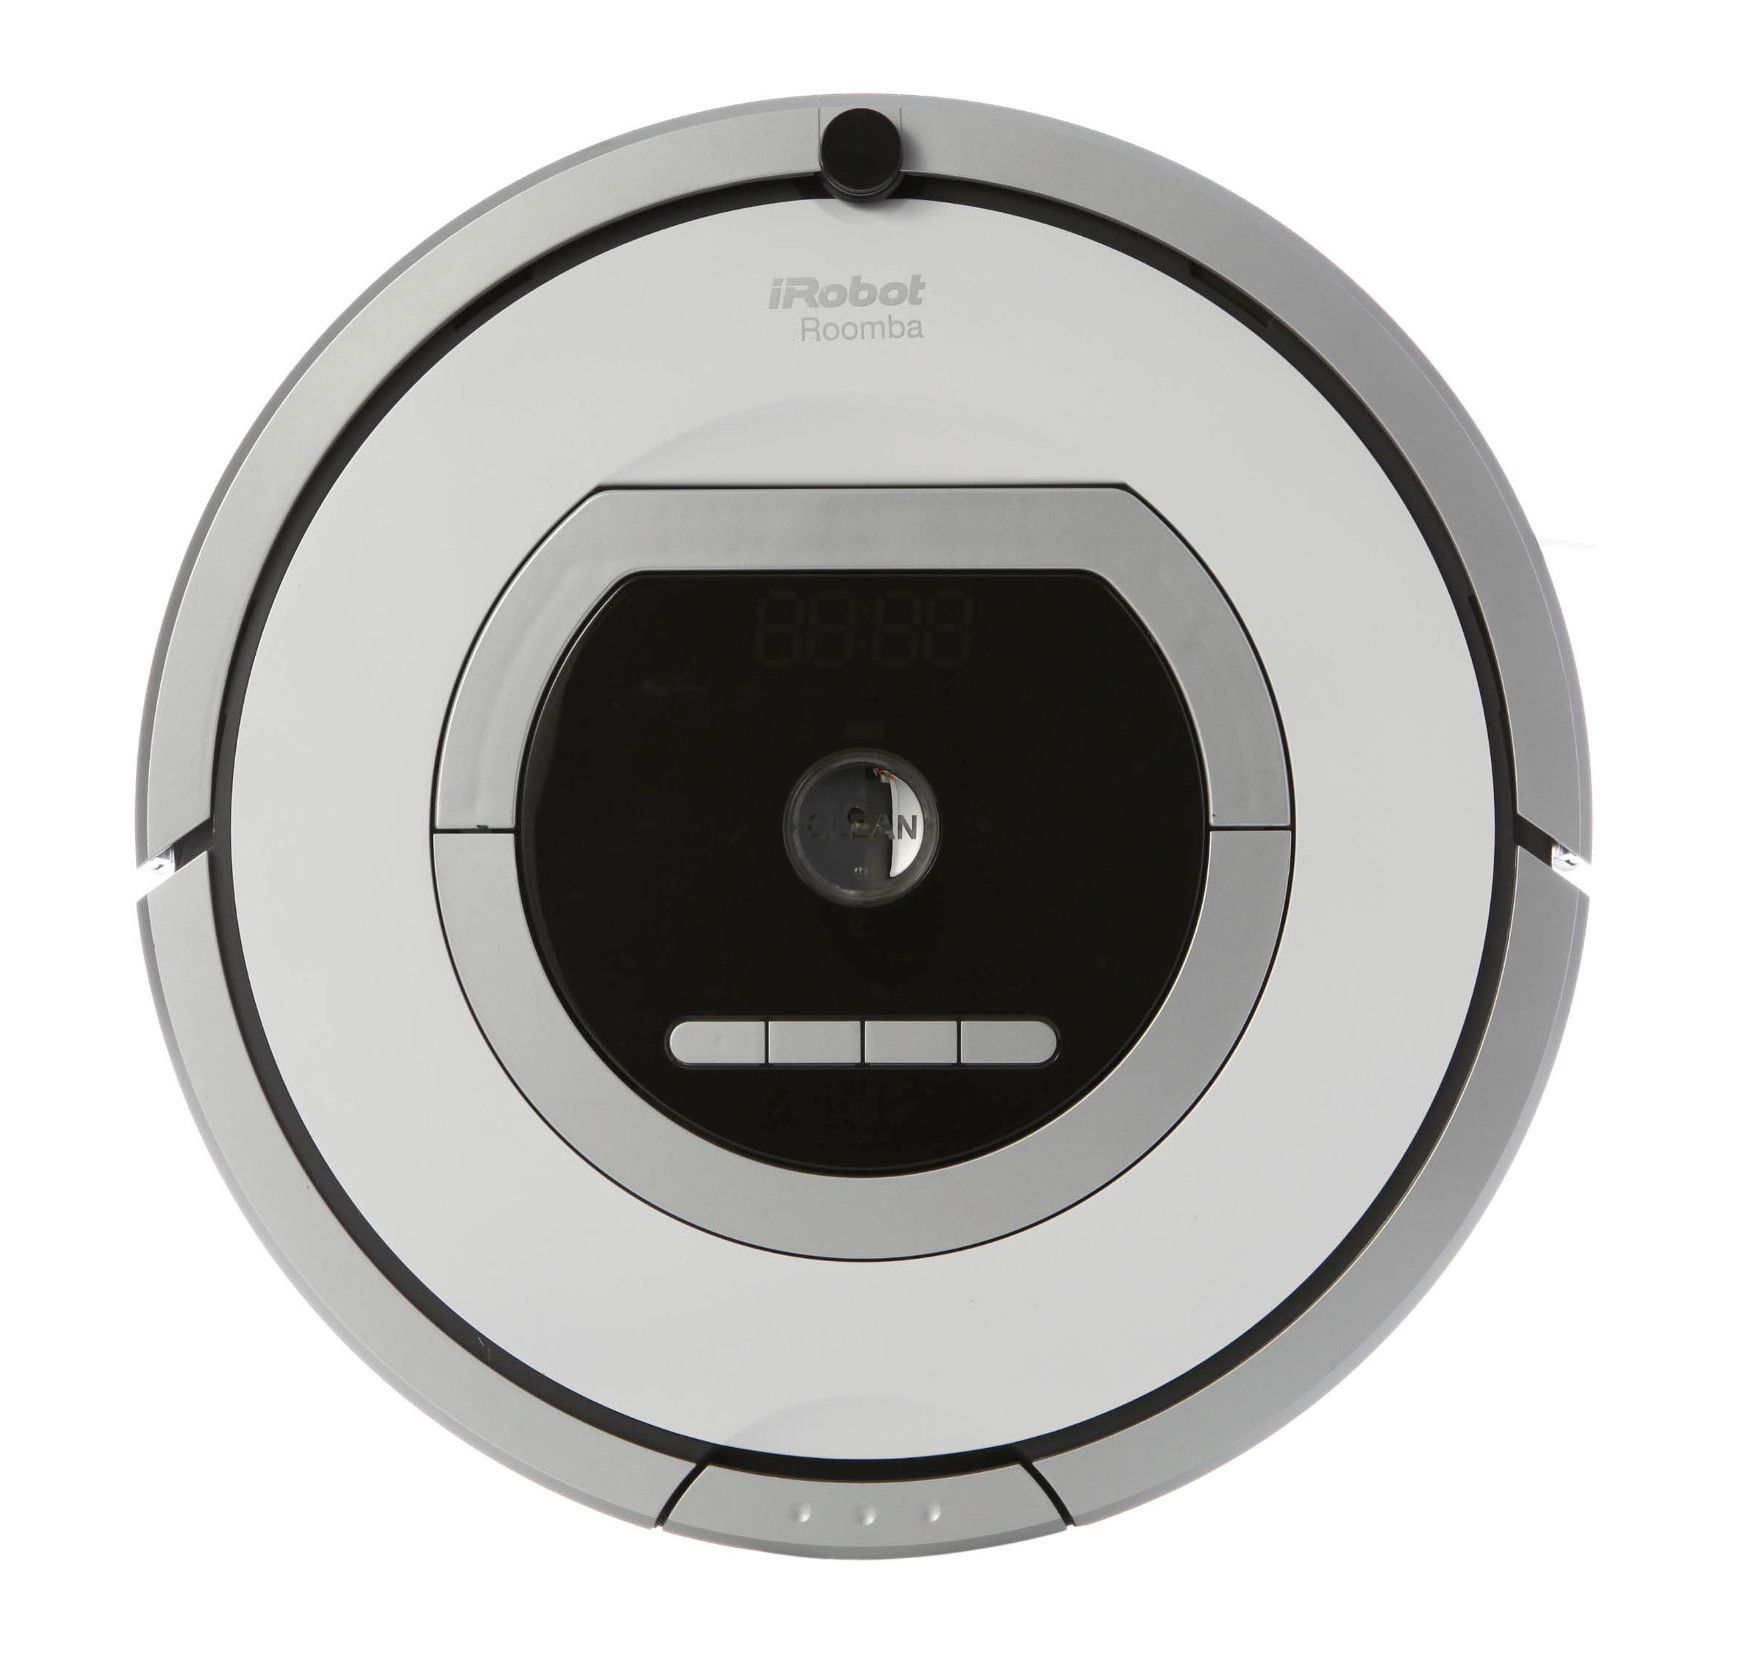 aspirateur robot irobot roomba 760 achat vente. Black Bedroom Furniture Sets. Home Design Ideas